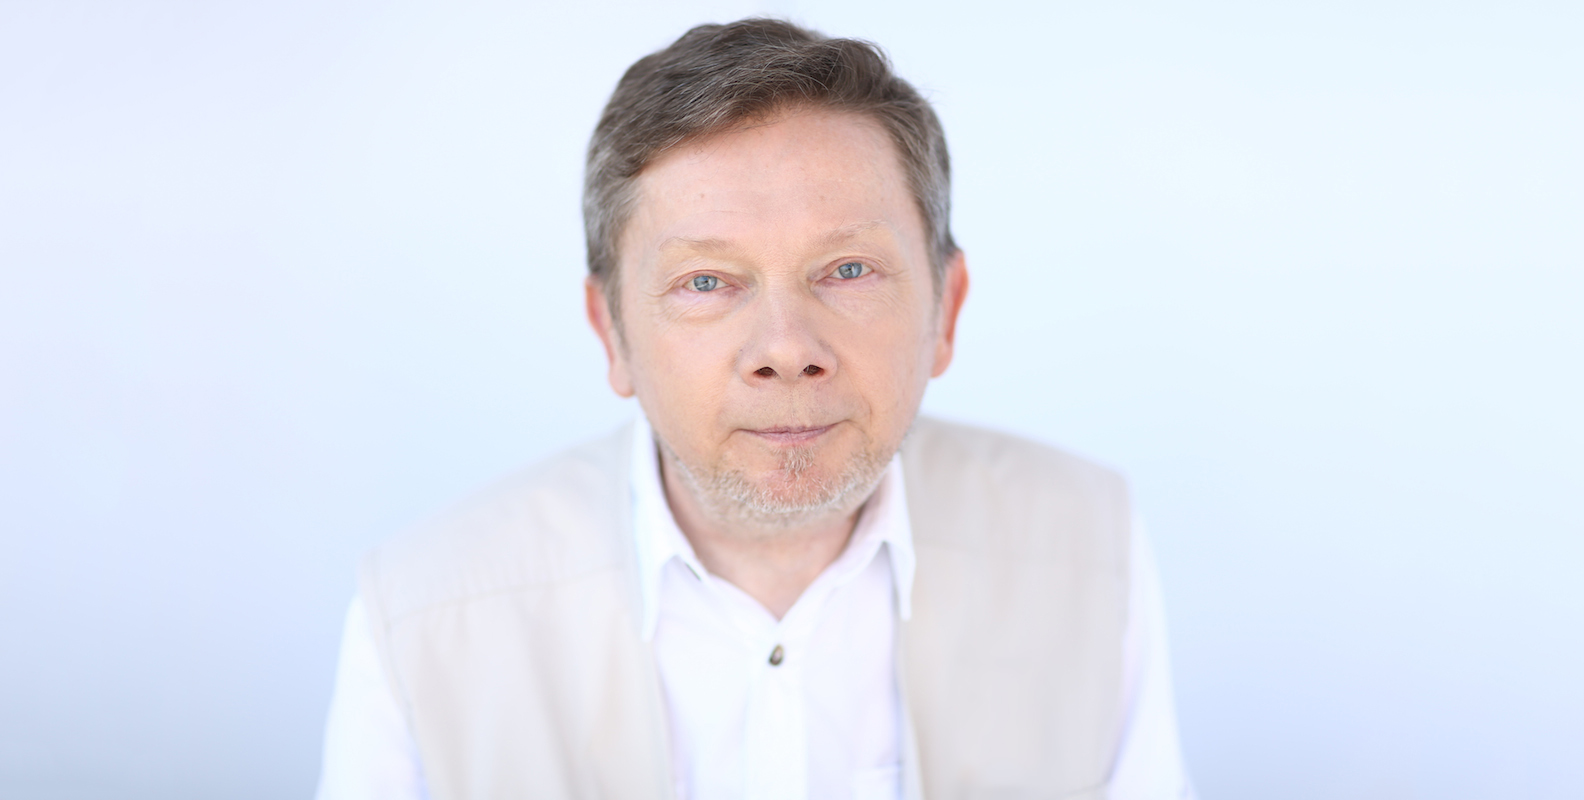 Home Eckhart Tolle Official Site Spiritual Teachings